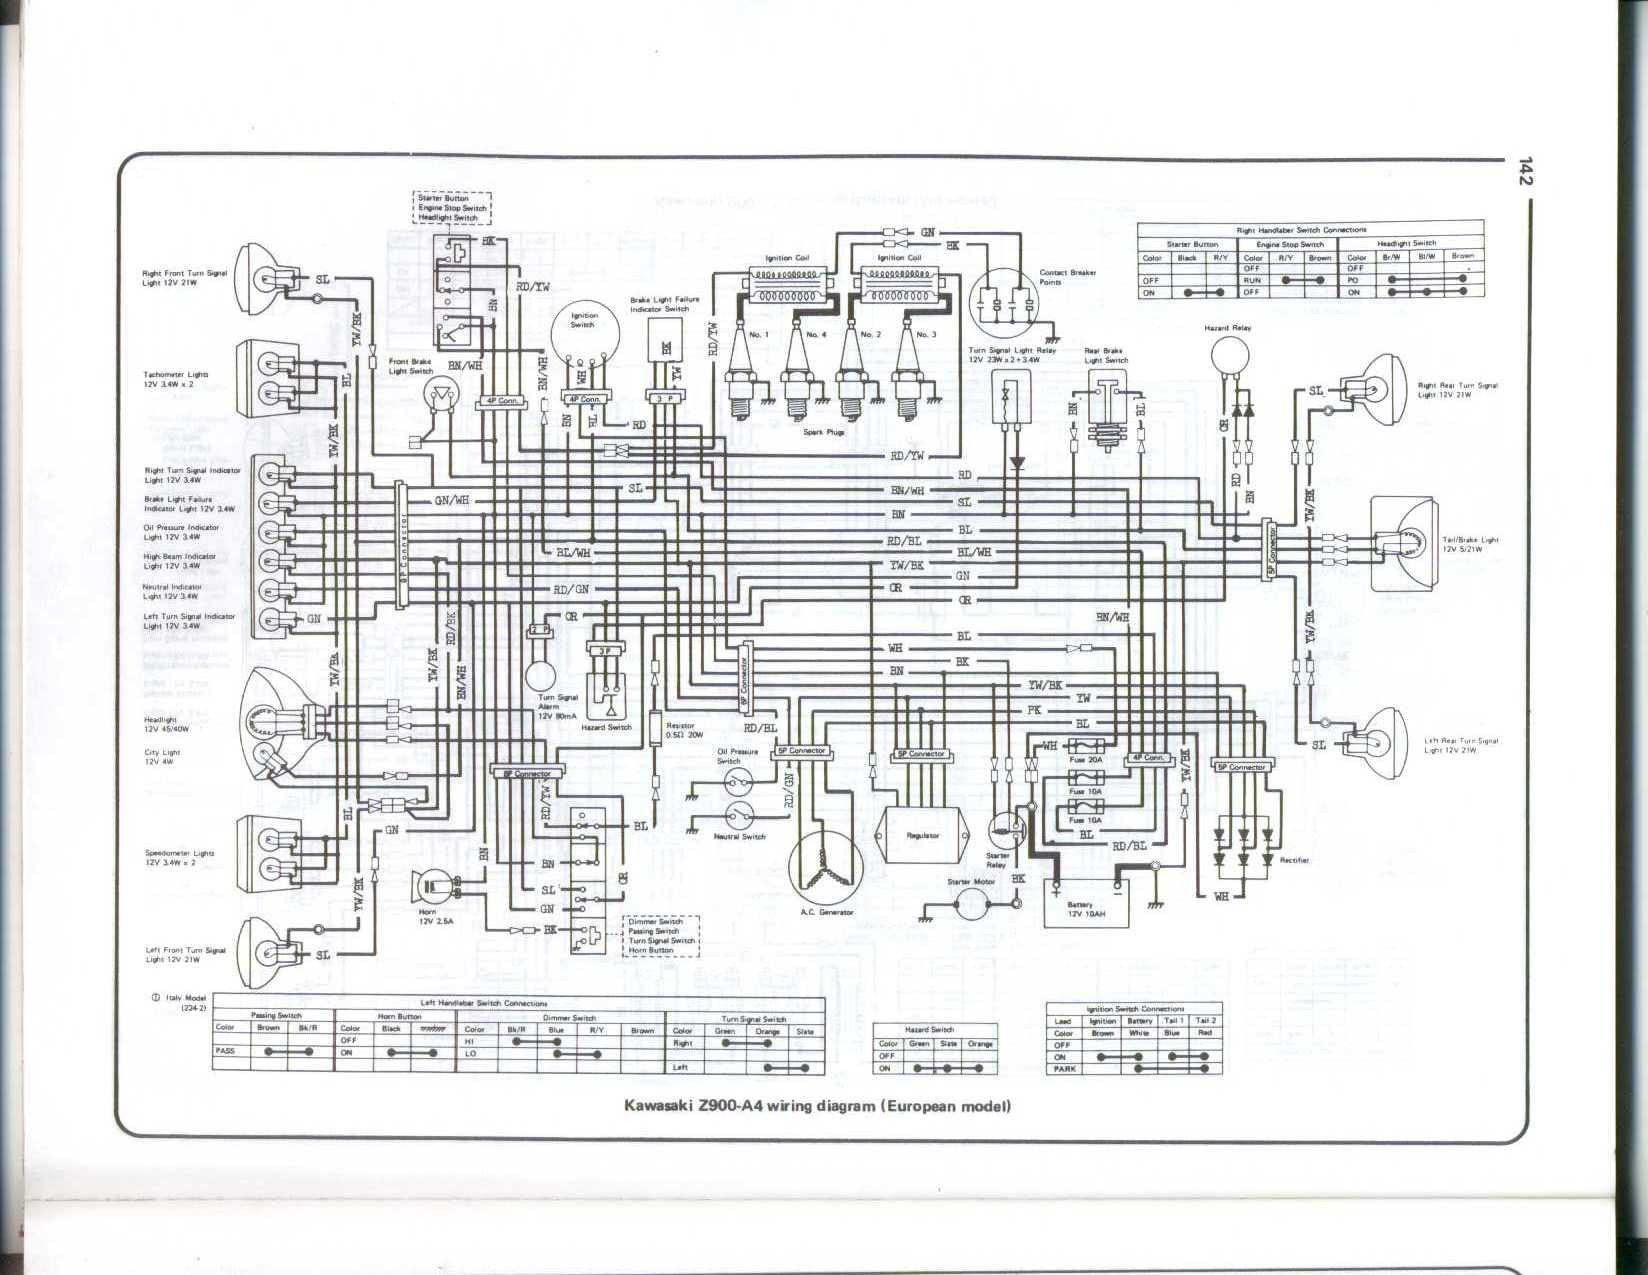 hight resolution of kawasaki z 550 wiring diagram wiring diagram metawiring diagram for kawasaki z1 wiring diagram mega kawasaki